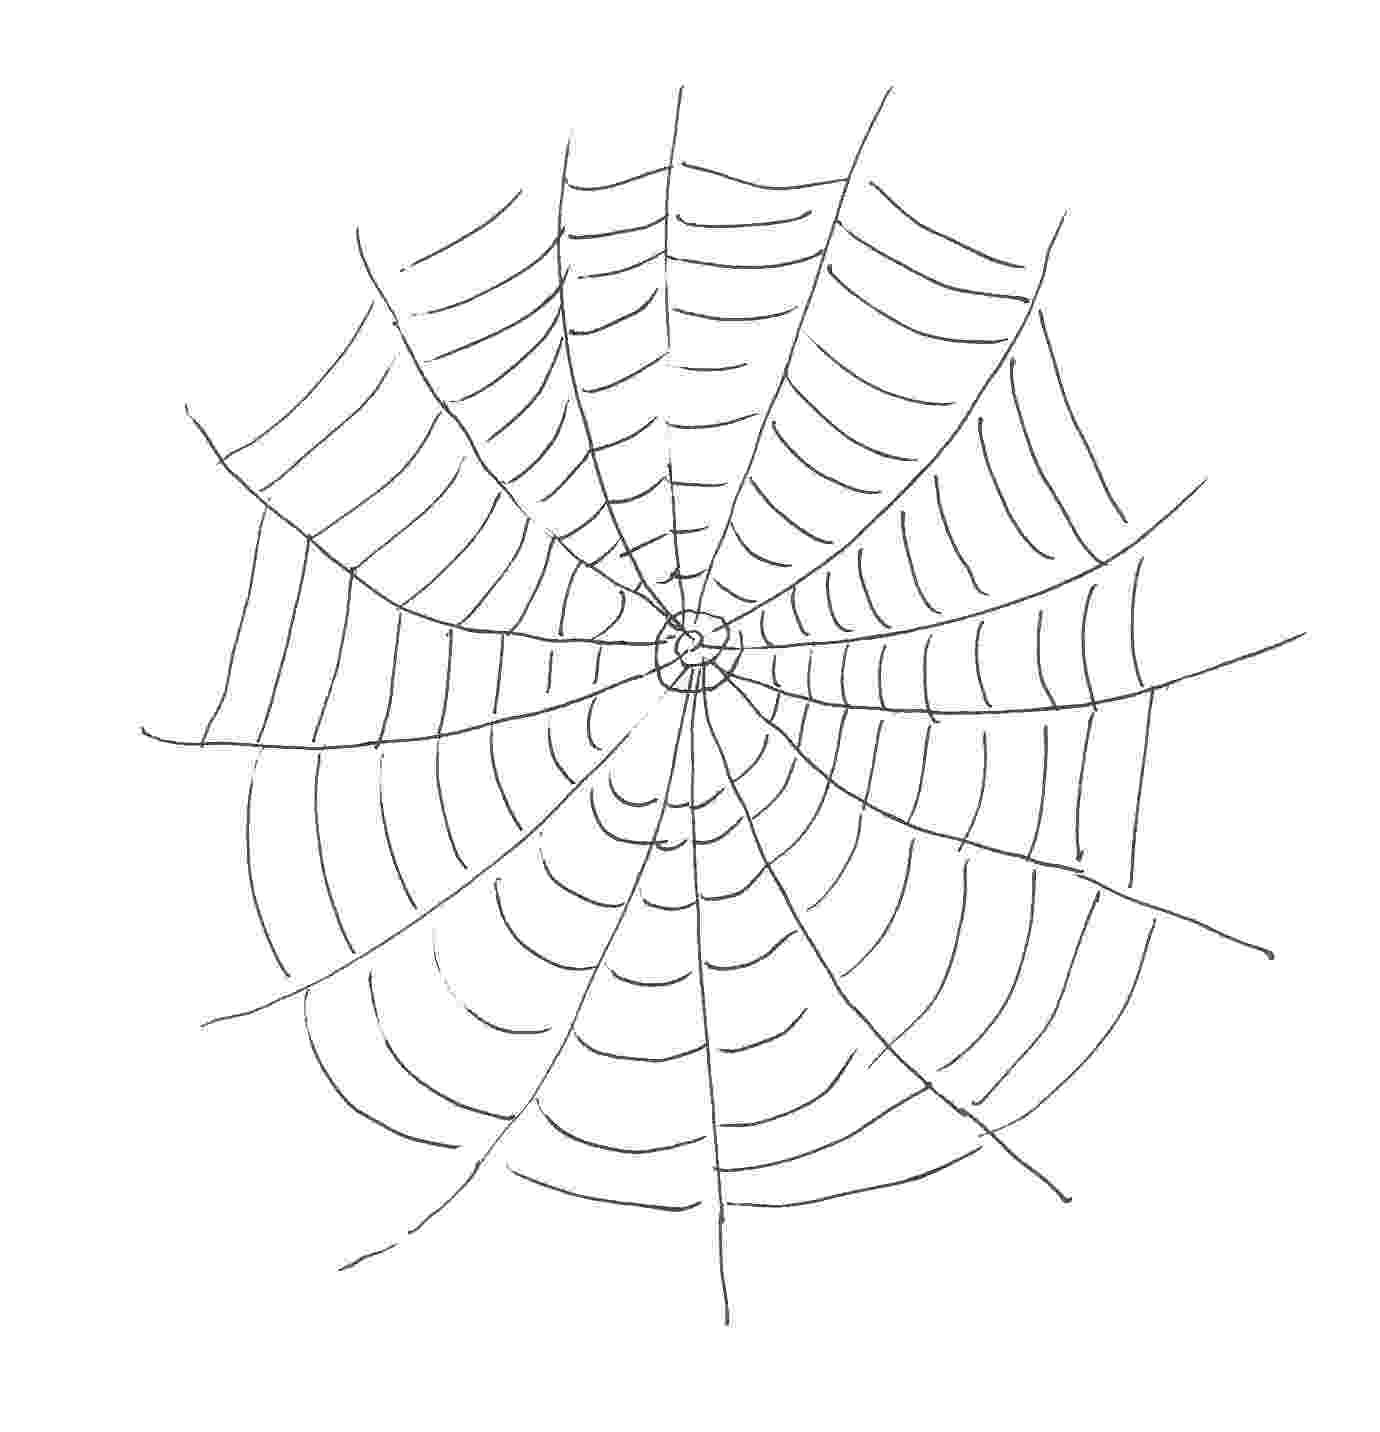 coloring pages websites free printable spider web coloring pages for kids coloring pages websites 1 1